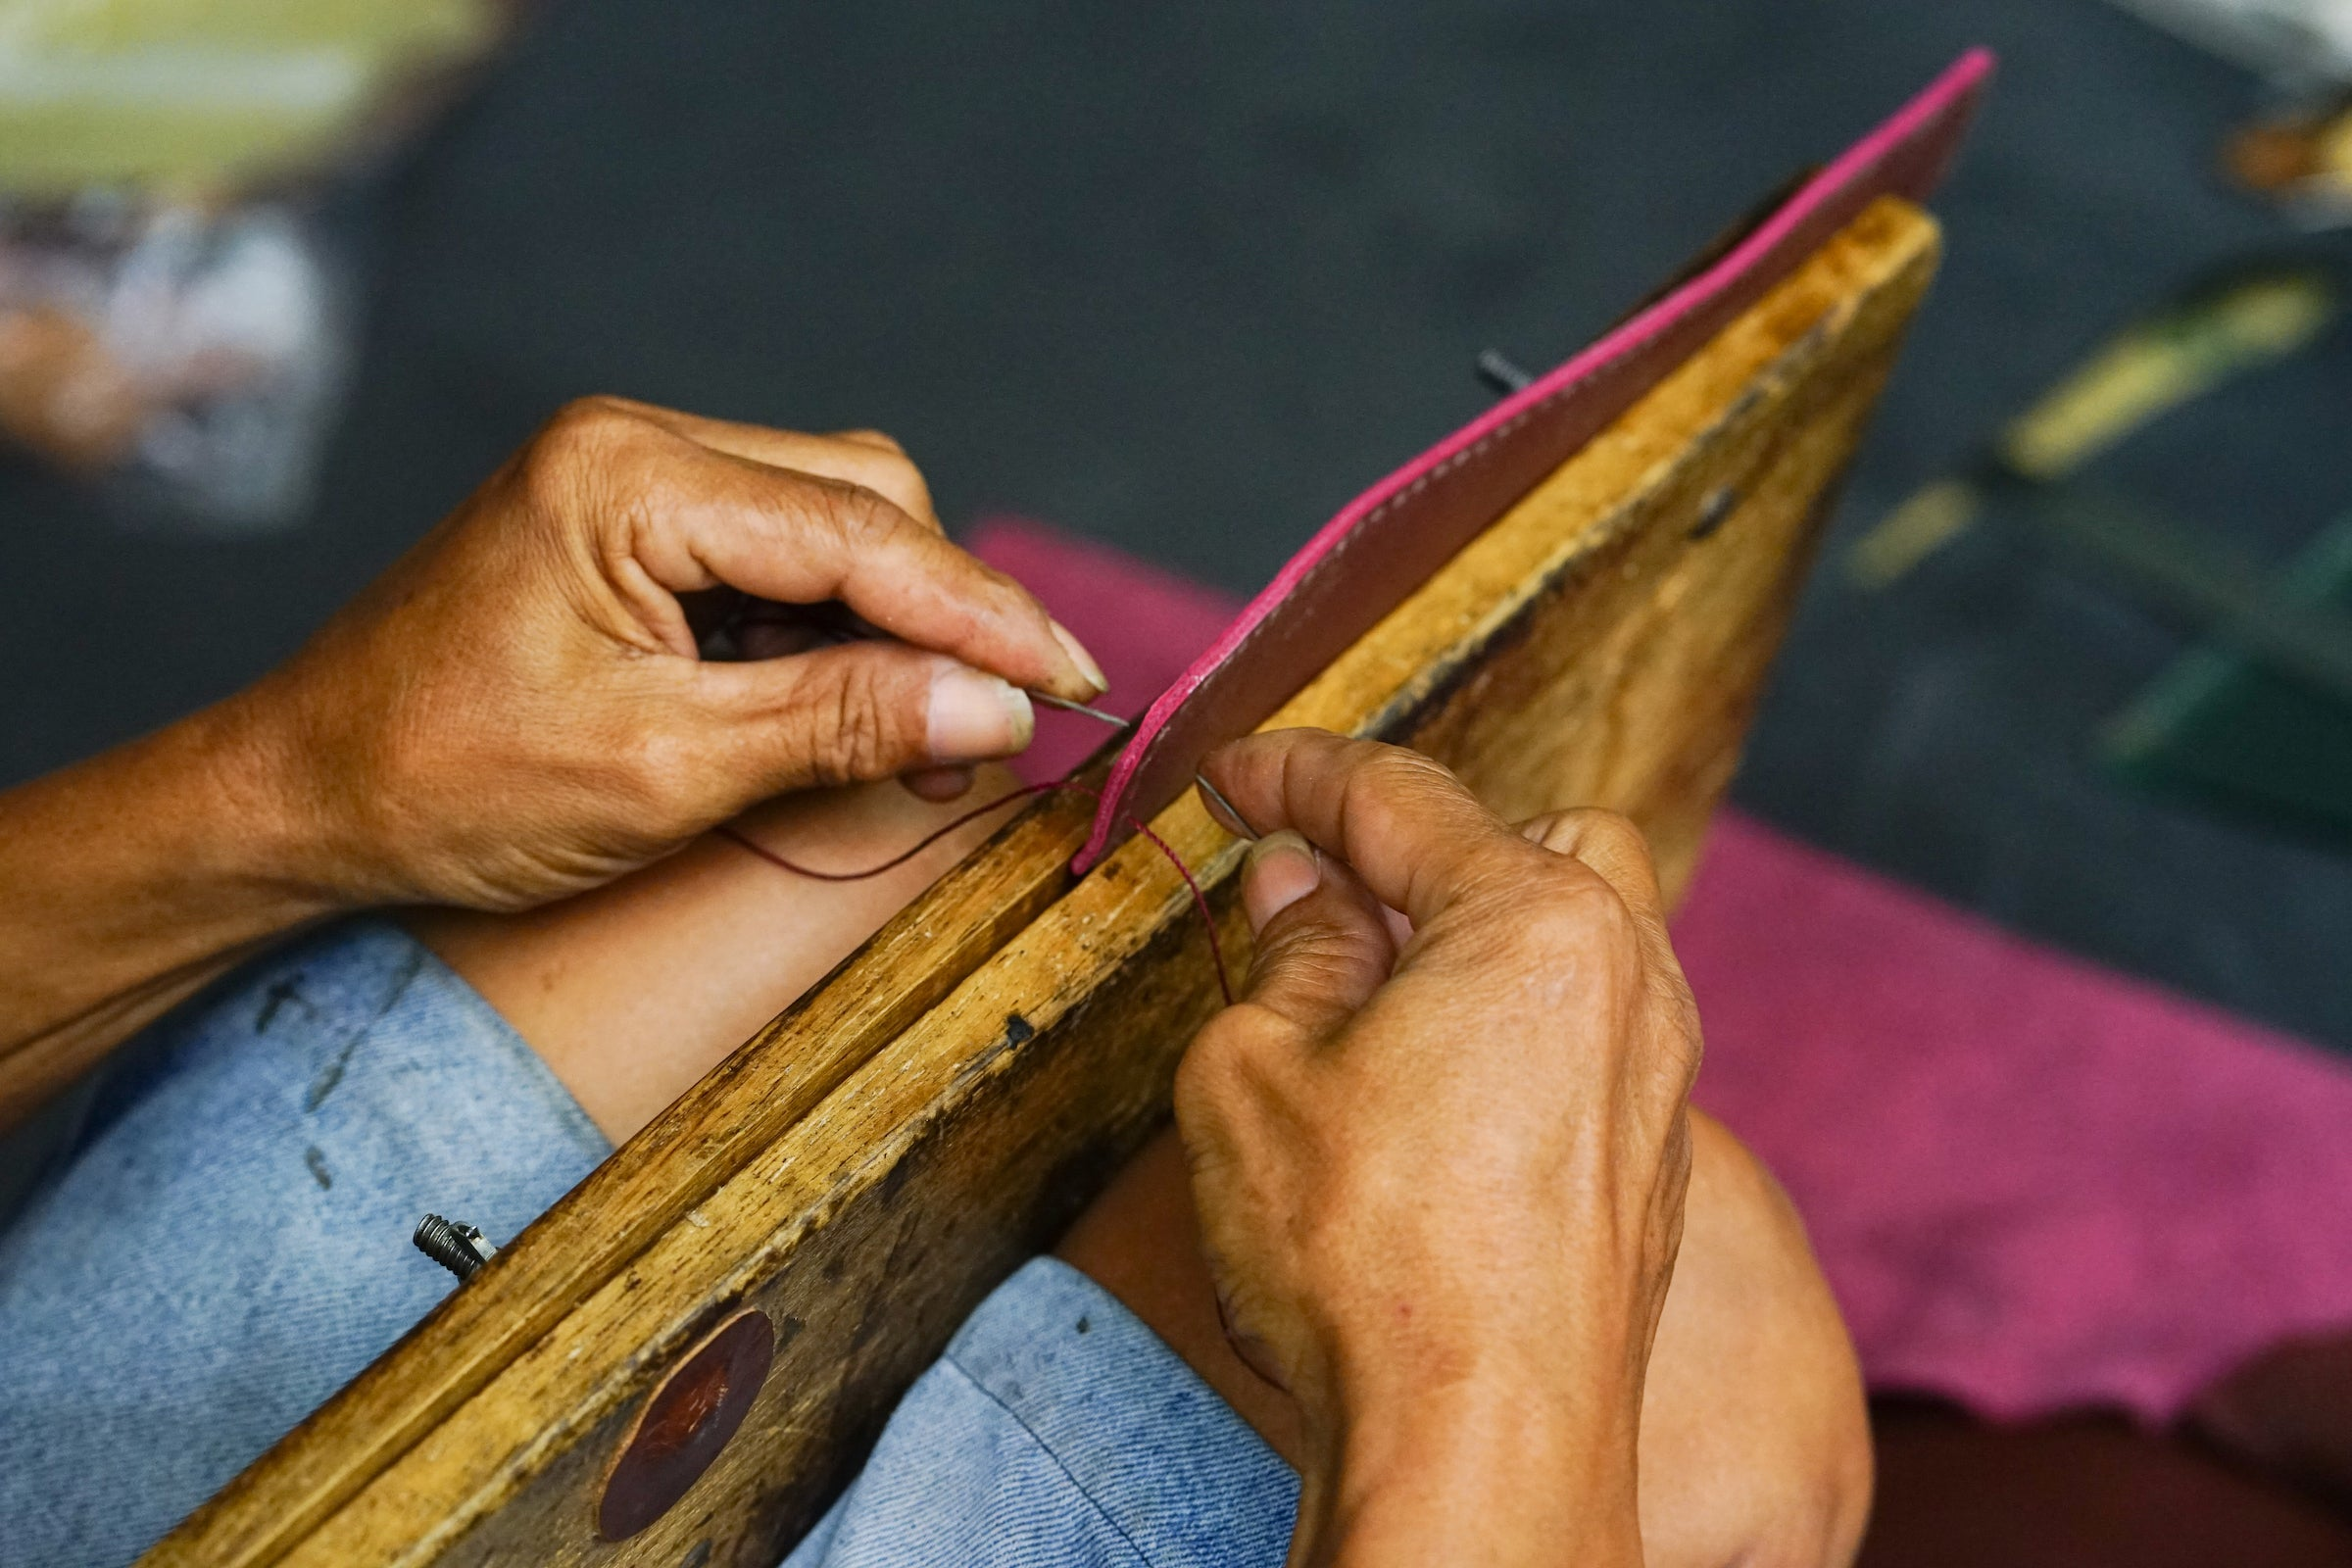 Artisan hand sewing two pieces of burgundy leather held together with a flat wooden clamp held in place with his knees.